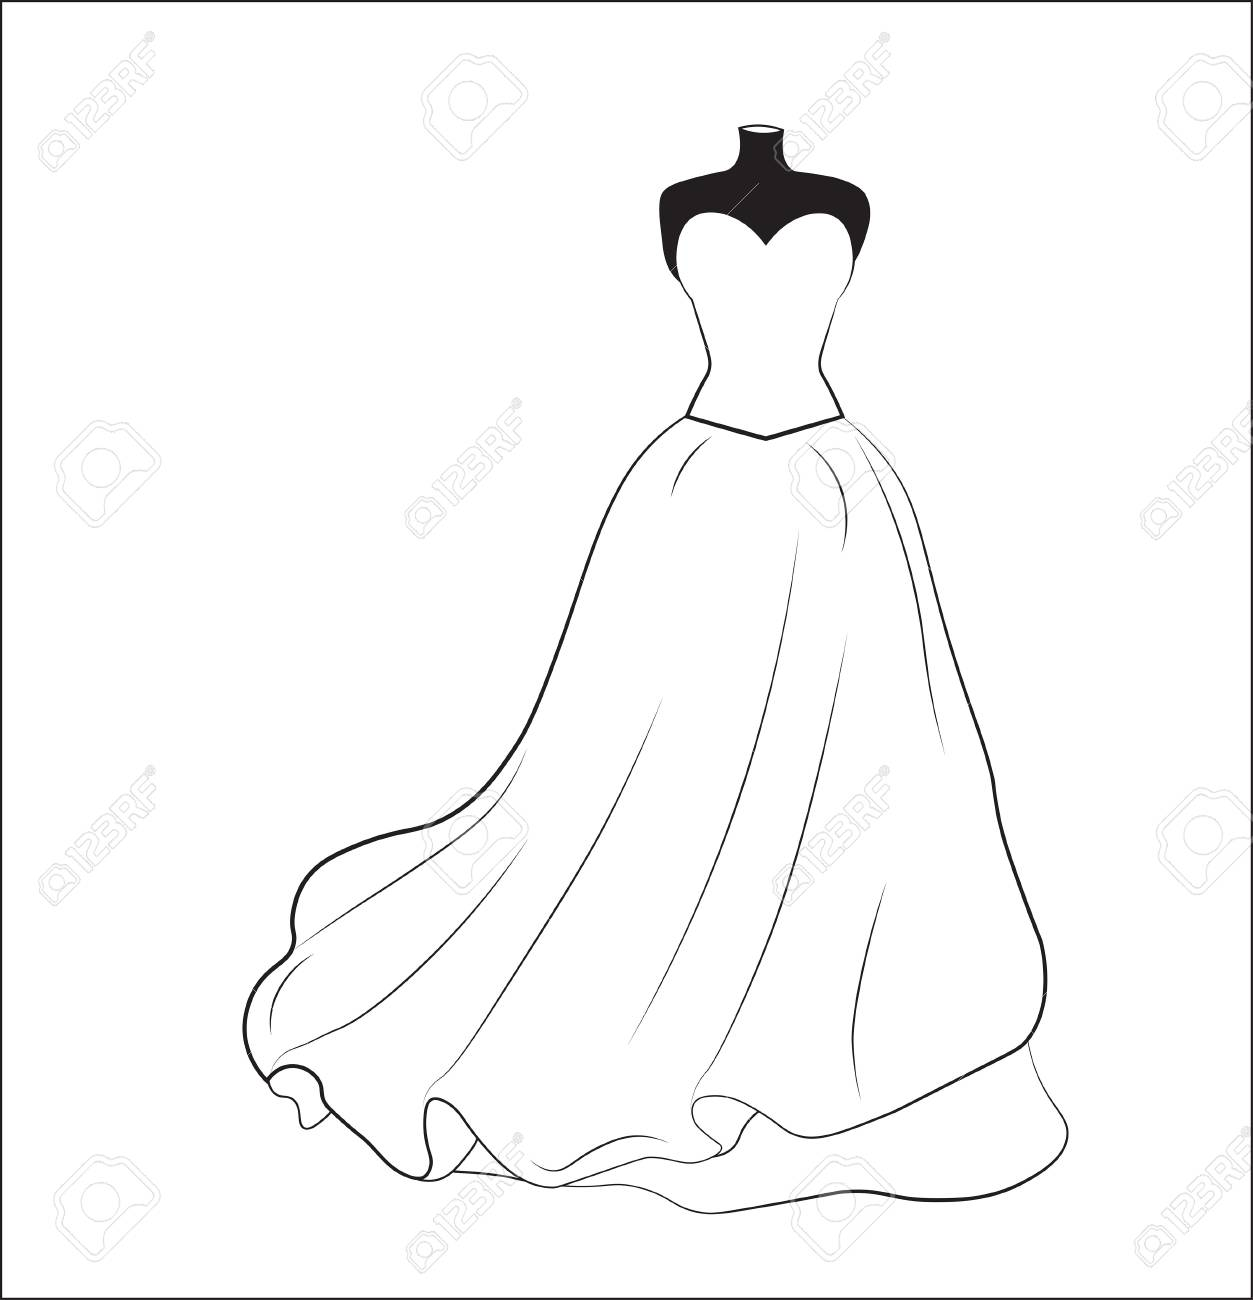 1253x1300 Sketch Of A White Wedding Dress On A Dummy, A Silhouette Royalty